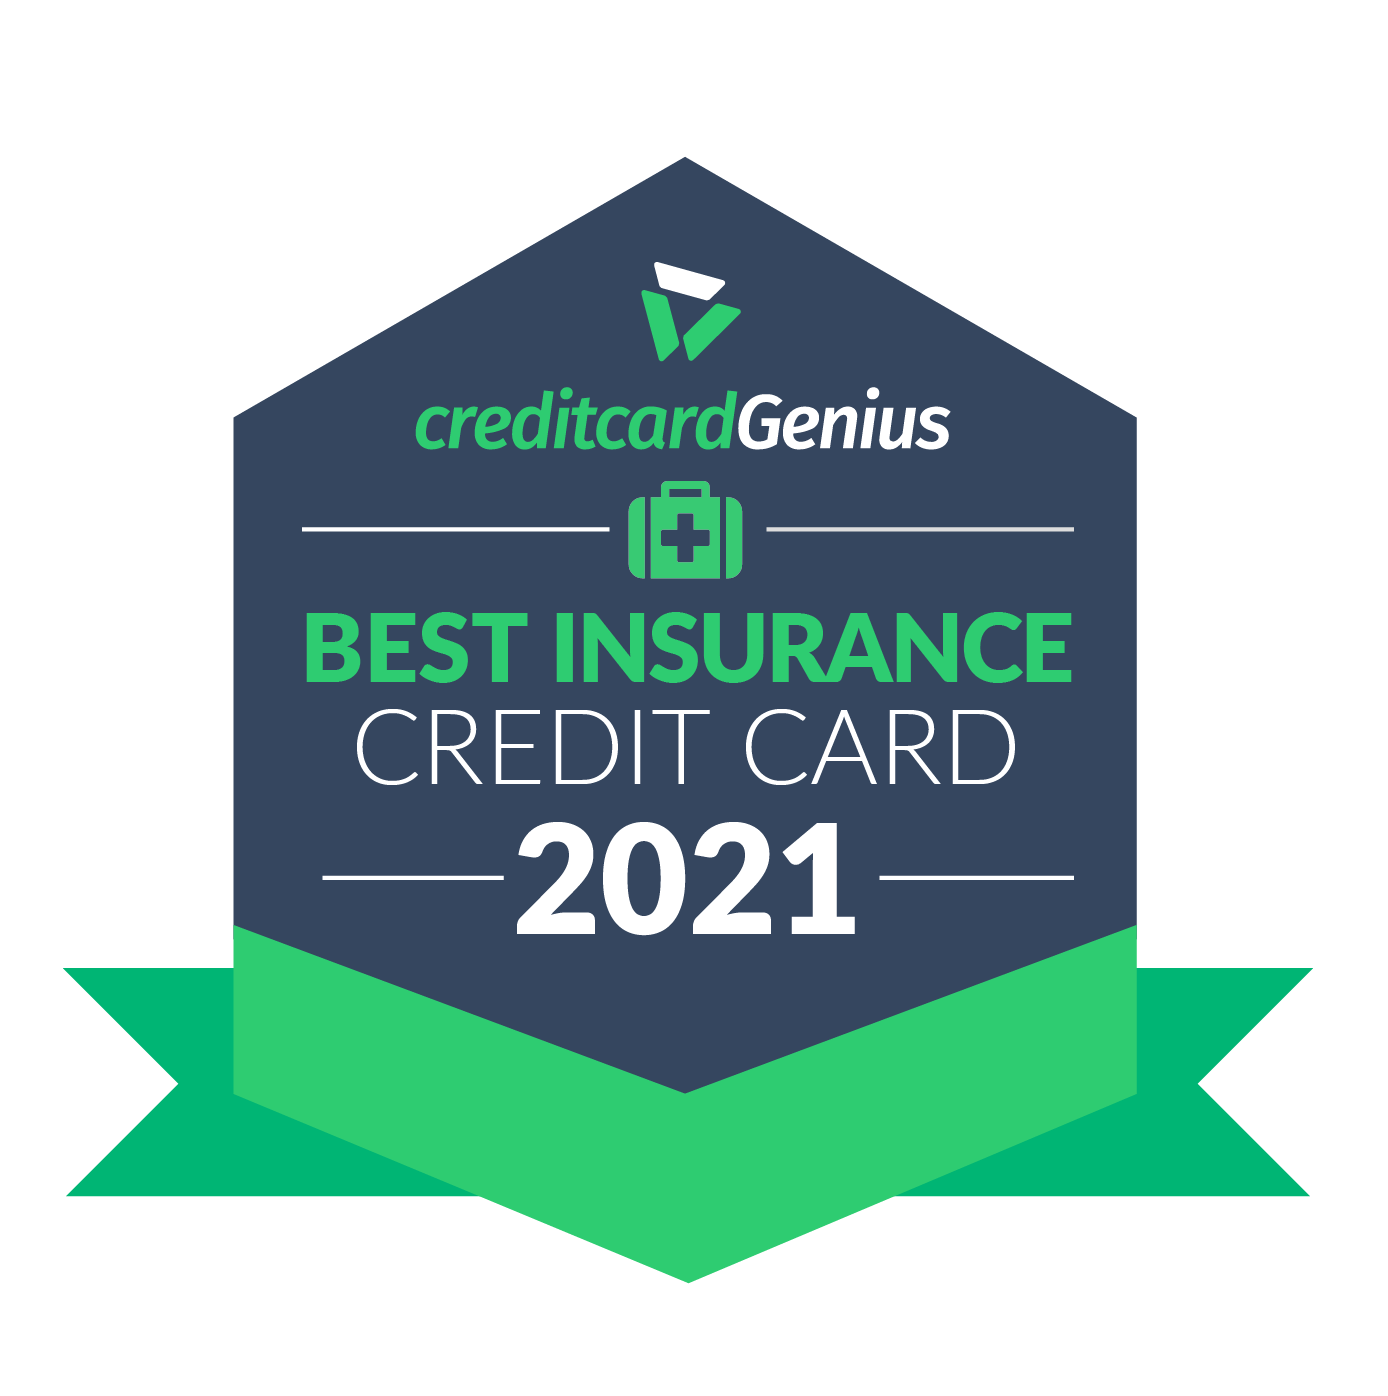 Best Insurance Credit Card